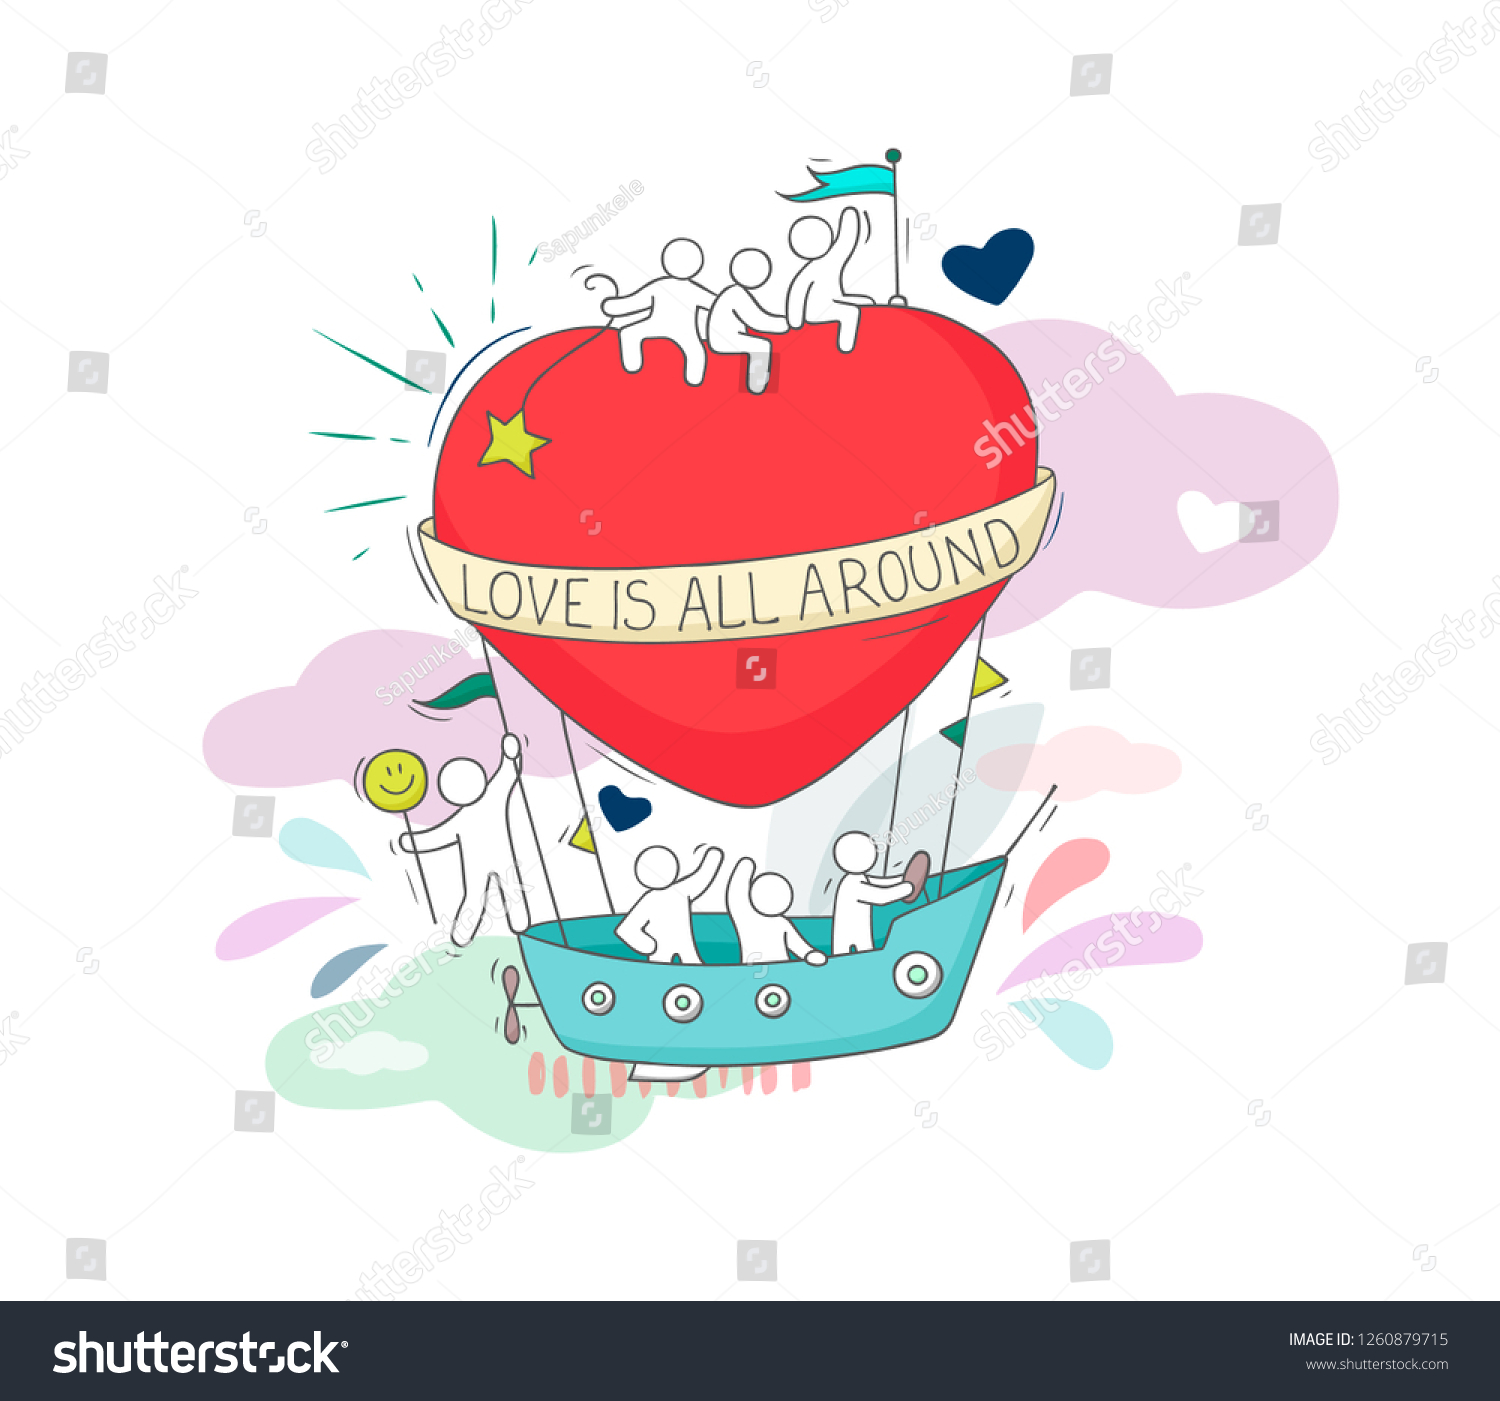 Sketch of fly big heart with cute little people doodle cute miniature romantic scene about